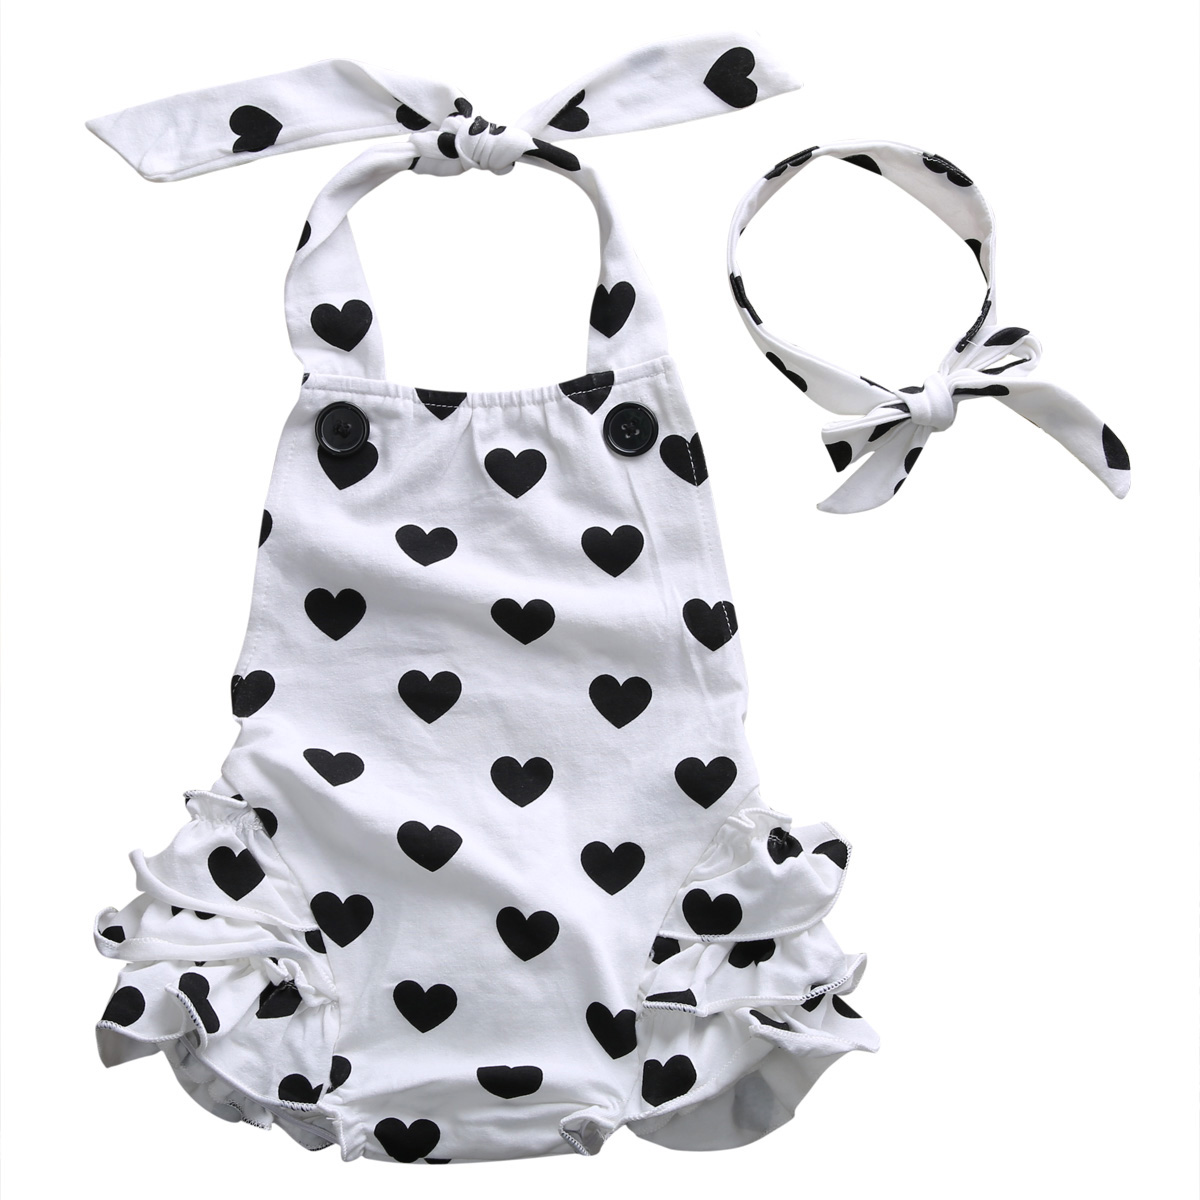 Infant Baby Girl Romper Print Love Heart Sleeve Jumpsuit Rompers+Headband 2pcs Summer Baby Clothes Halter Rompers Outfit Set ...